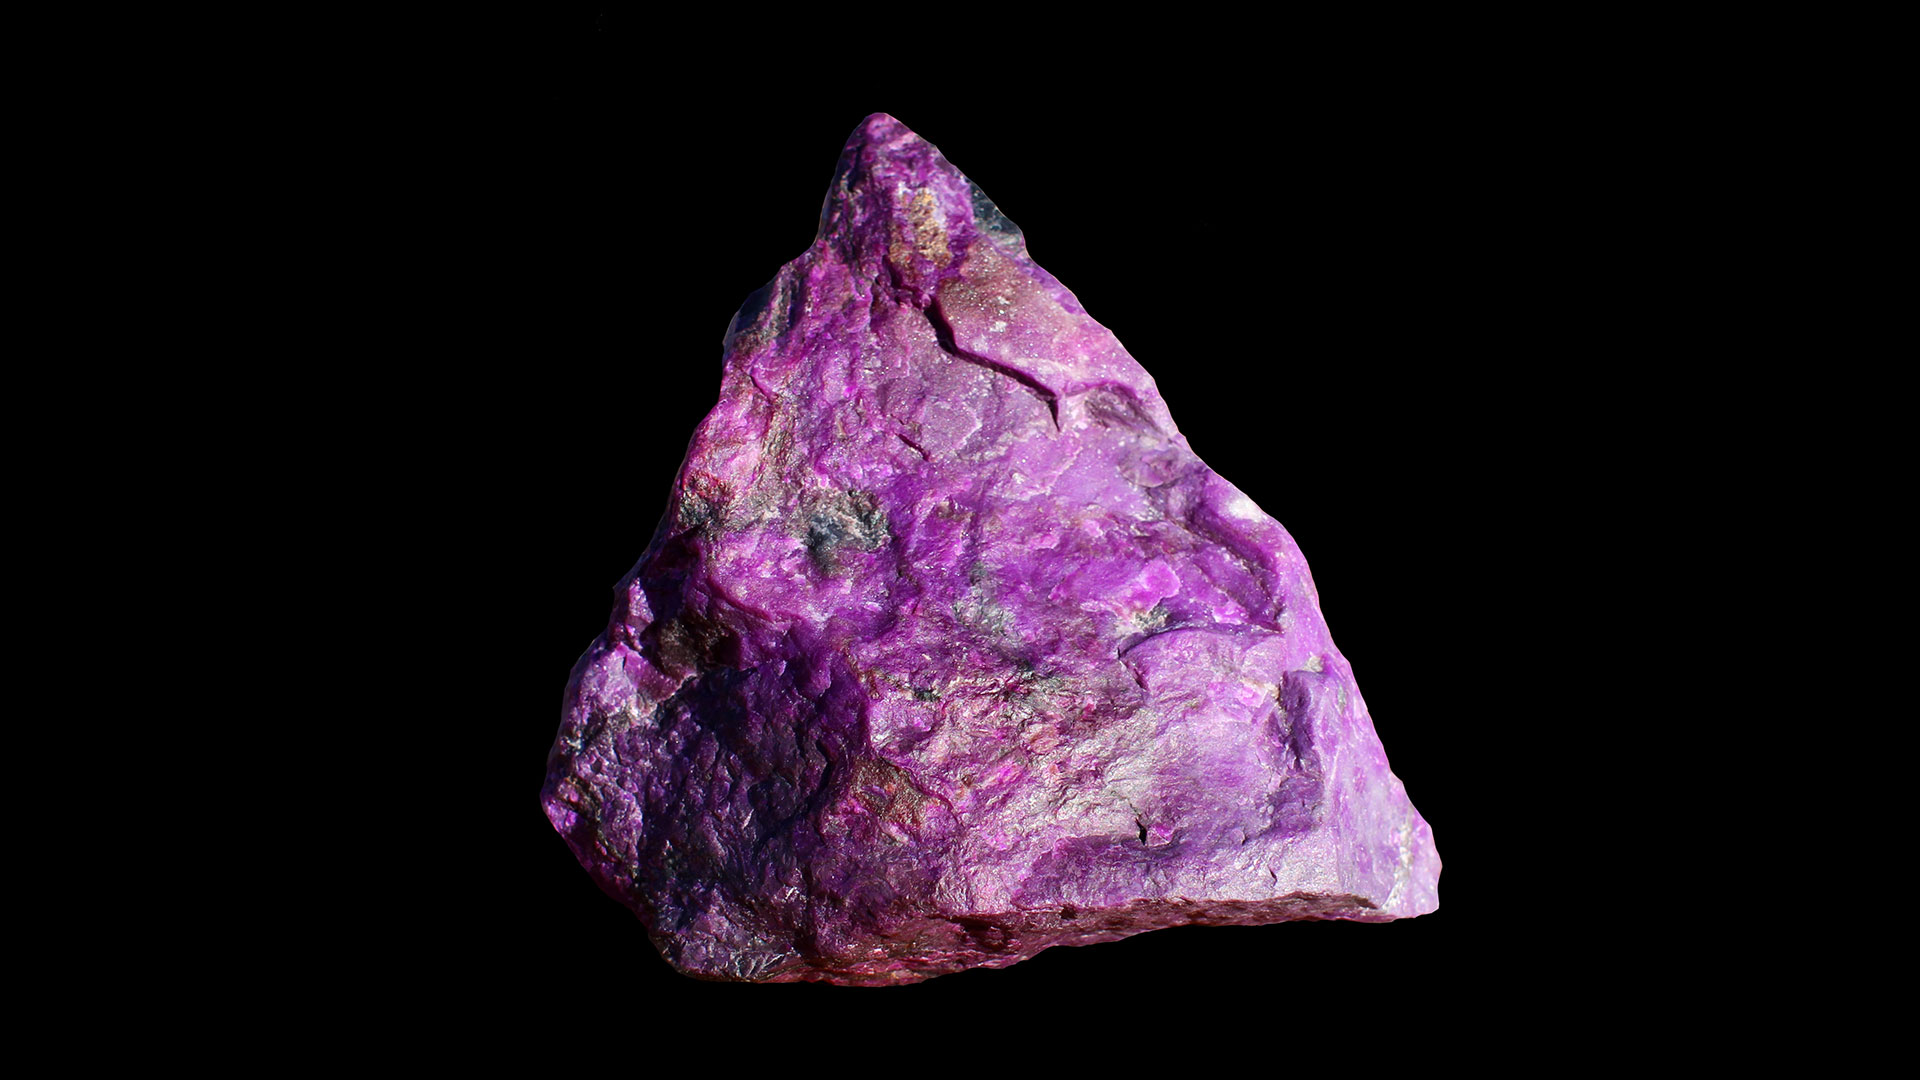 Sugilite properties and meaning photos crystal information - Sugilite Crystal Specimen Mineral Specimen Original Photo By Tis0421